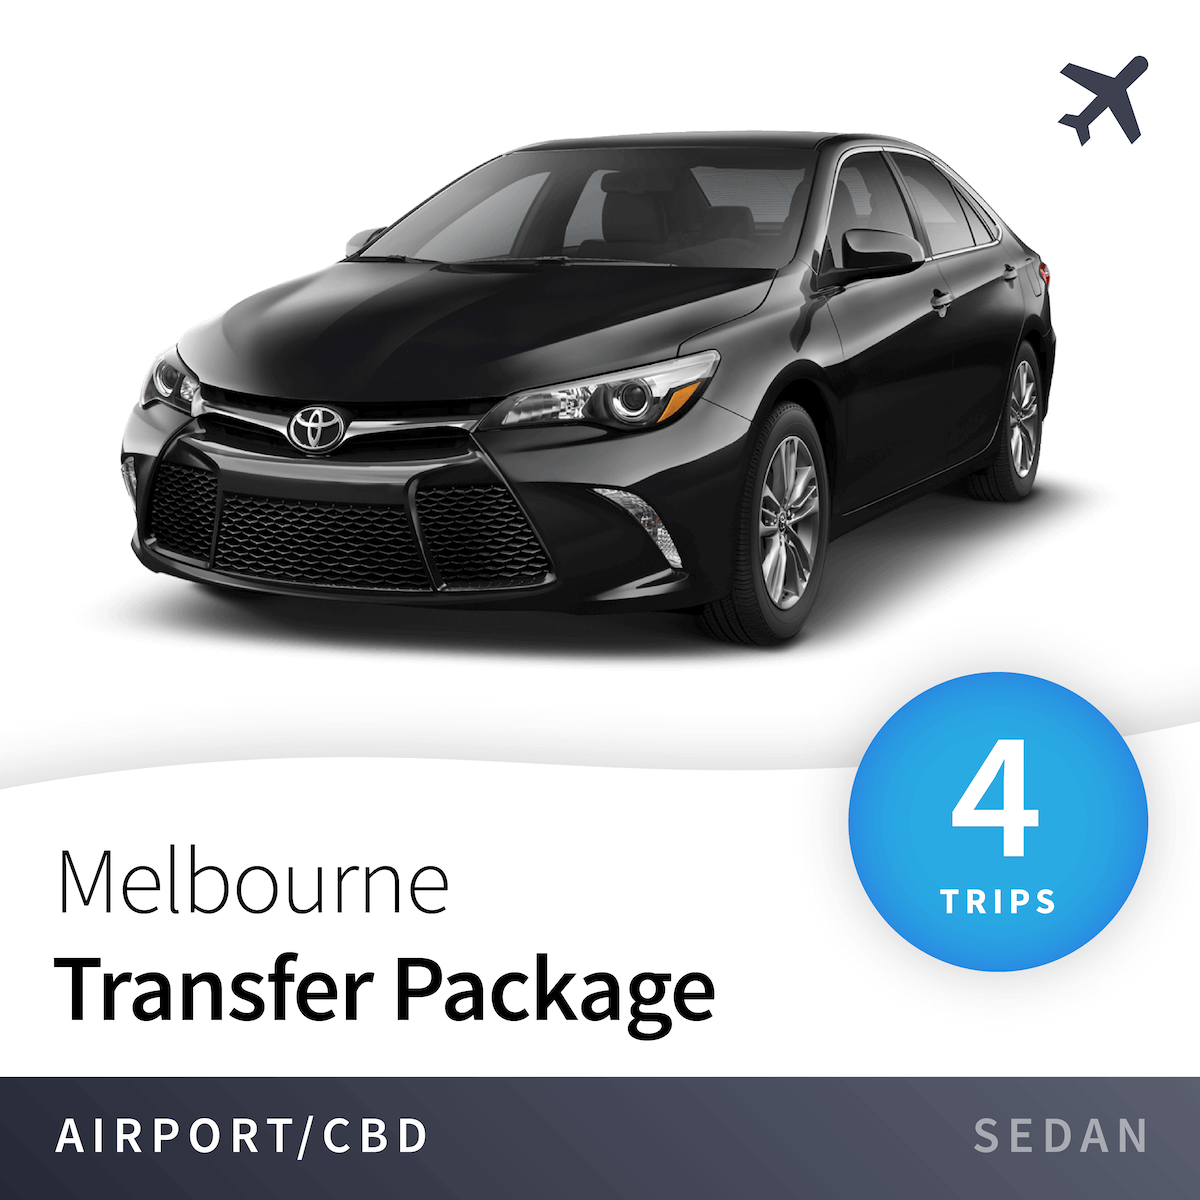 Melbourne Airport Transfer Package - Sedan (4 Trips) 8